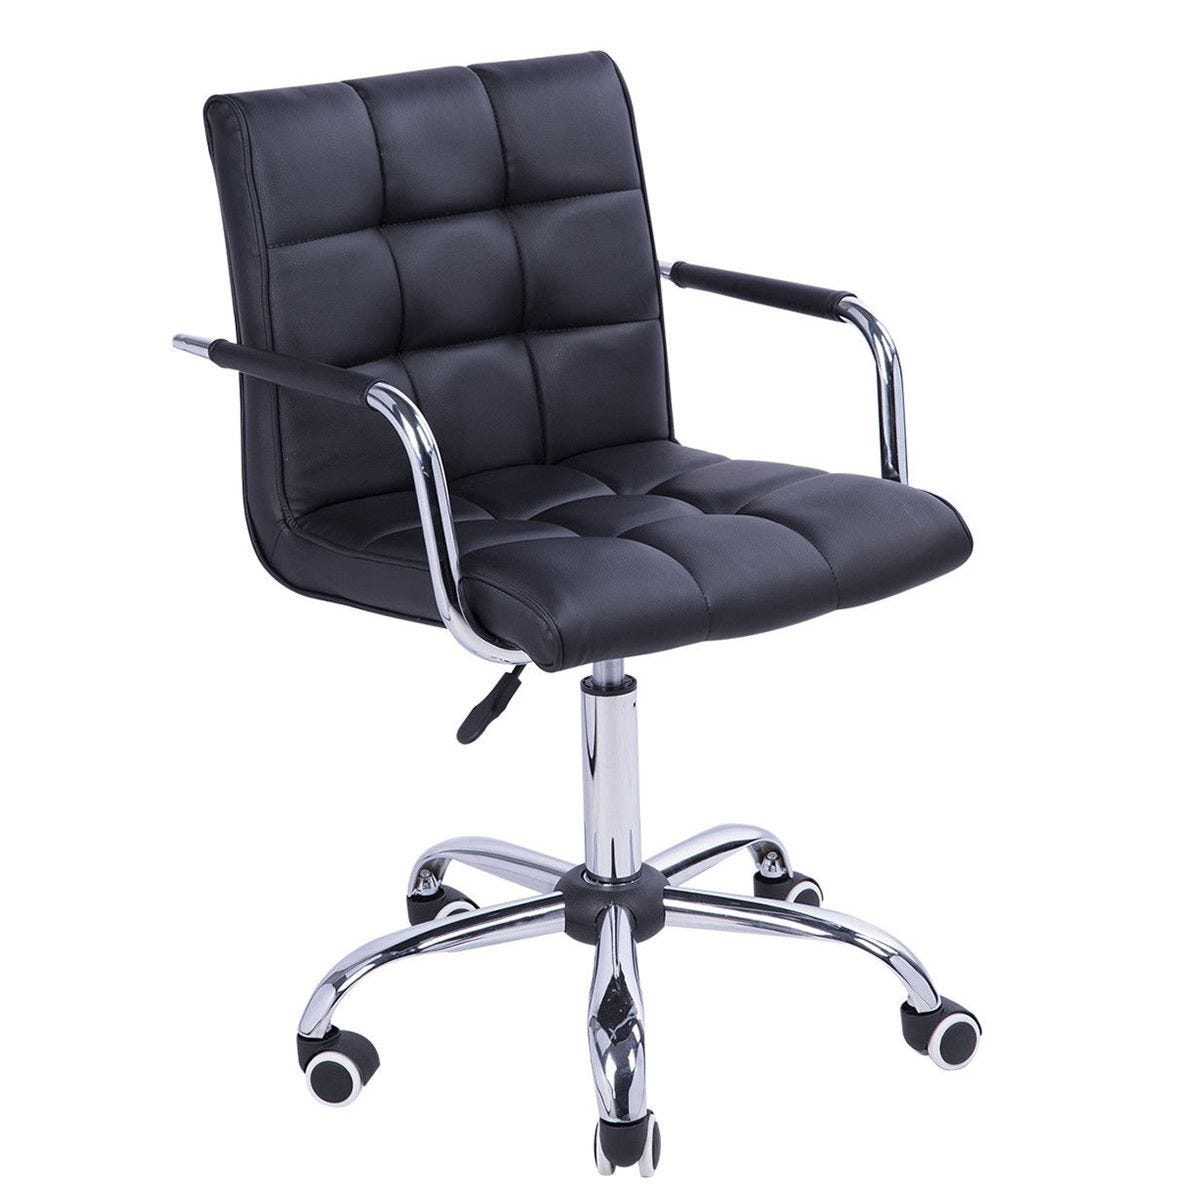 Zennor Perch PU Leather Chair - Black